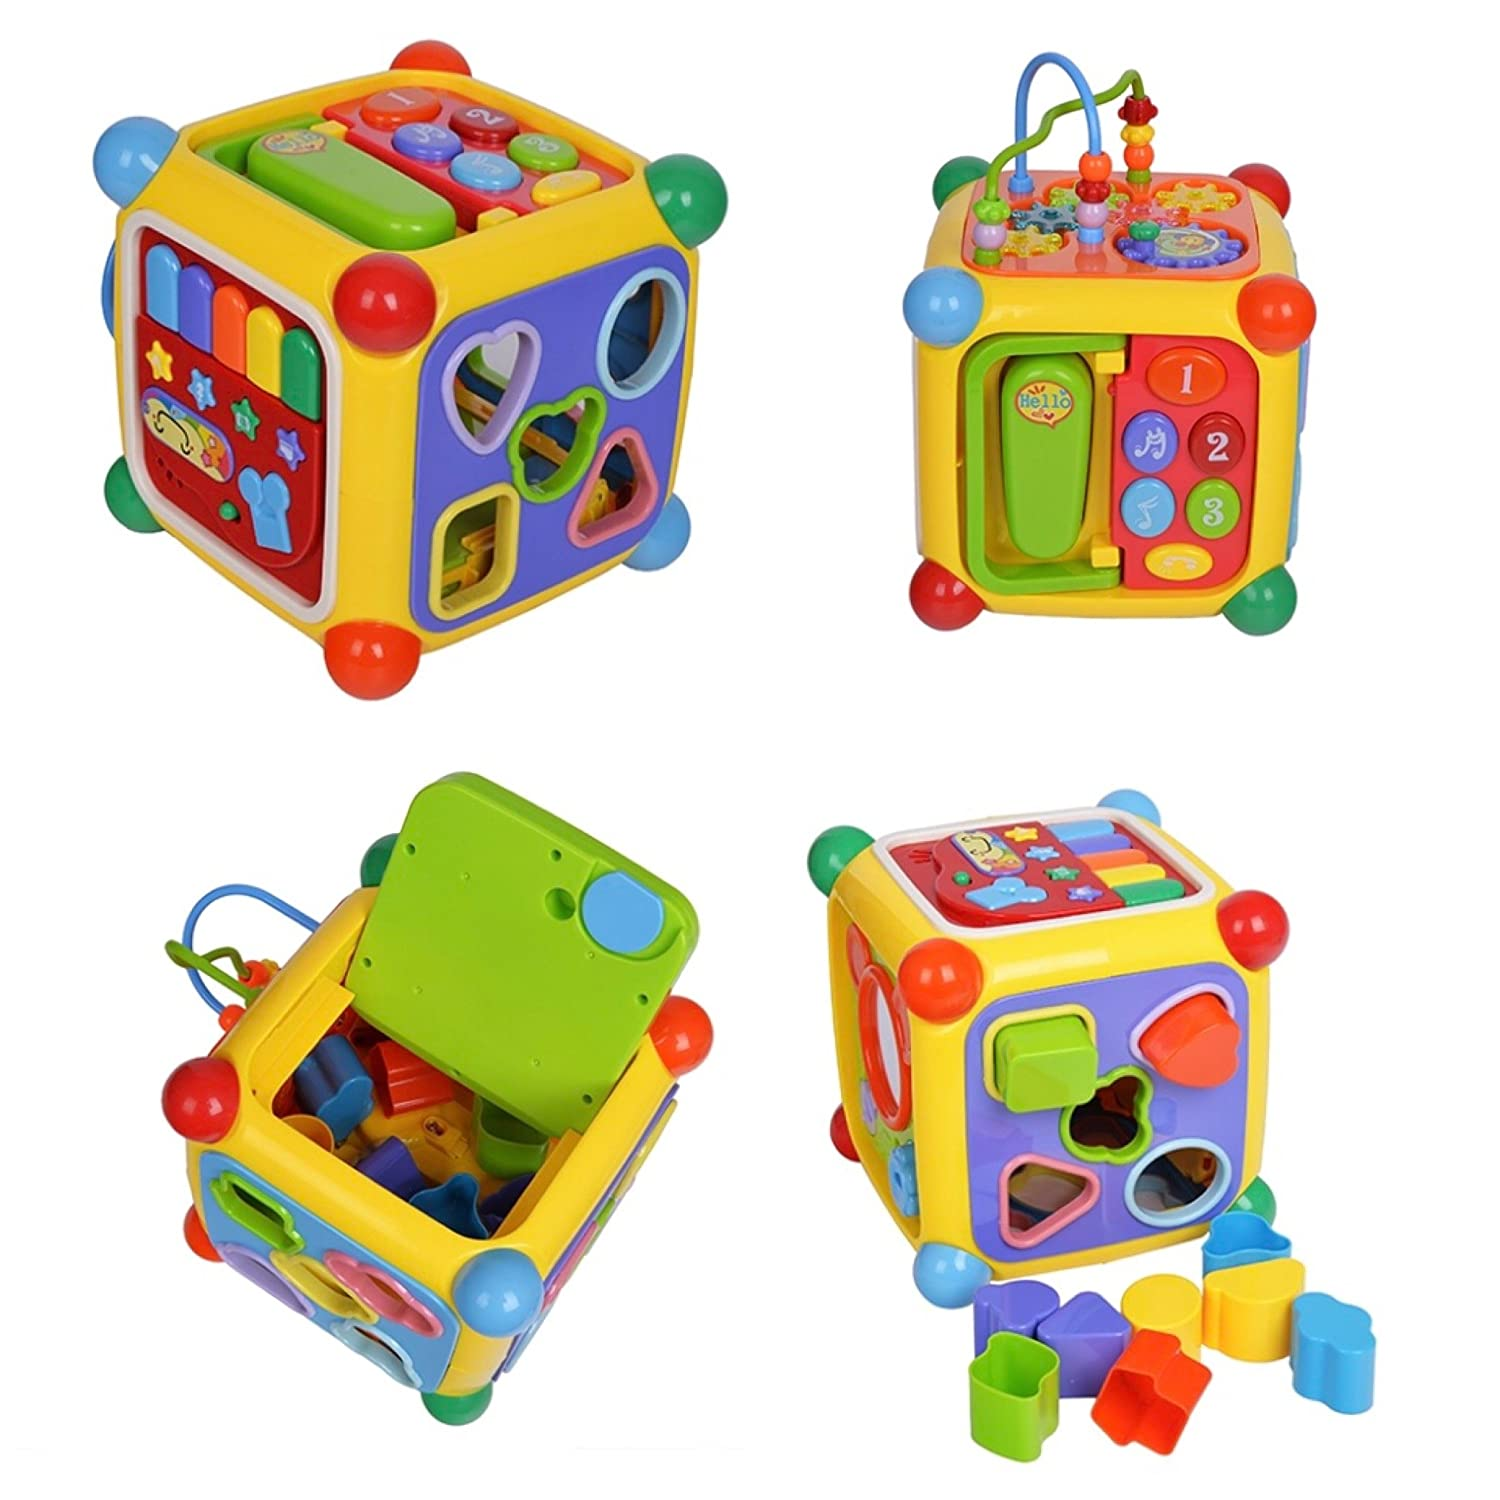 Activity cube toy busy box activity center features: well made 6-panel motor sensory intellect cube abacus beads wheel gear blocks and shapes puzzle piano set removable telephone & receiver Mickey mouse inspired self discovery mirror retractable key tw